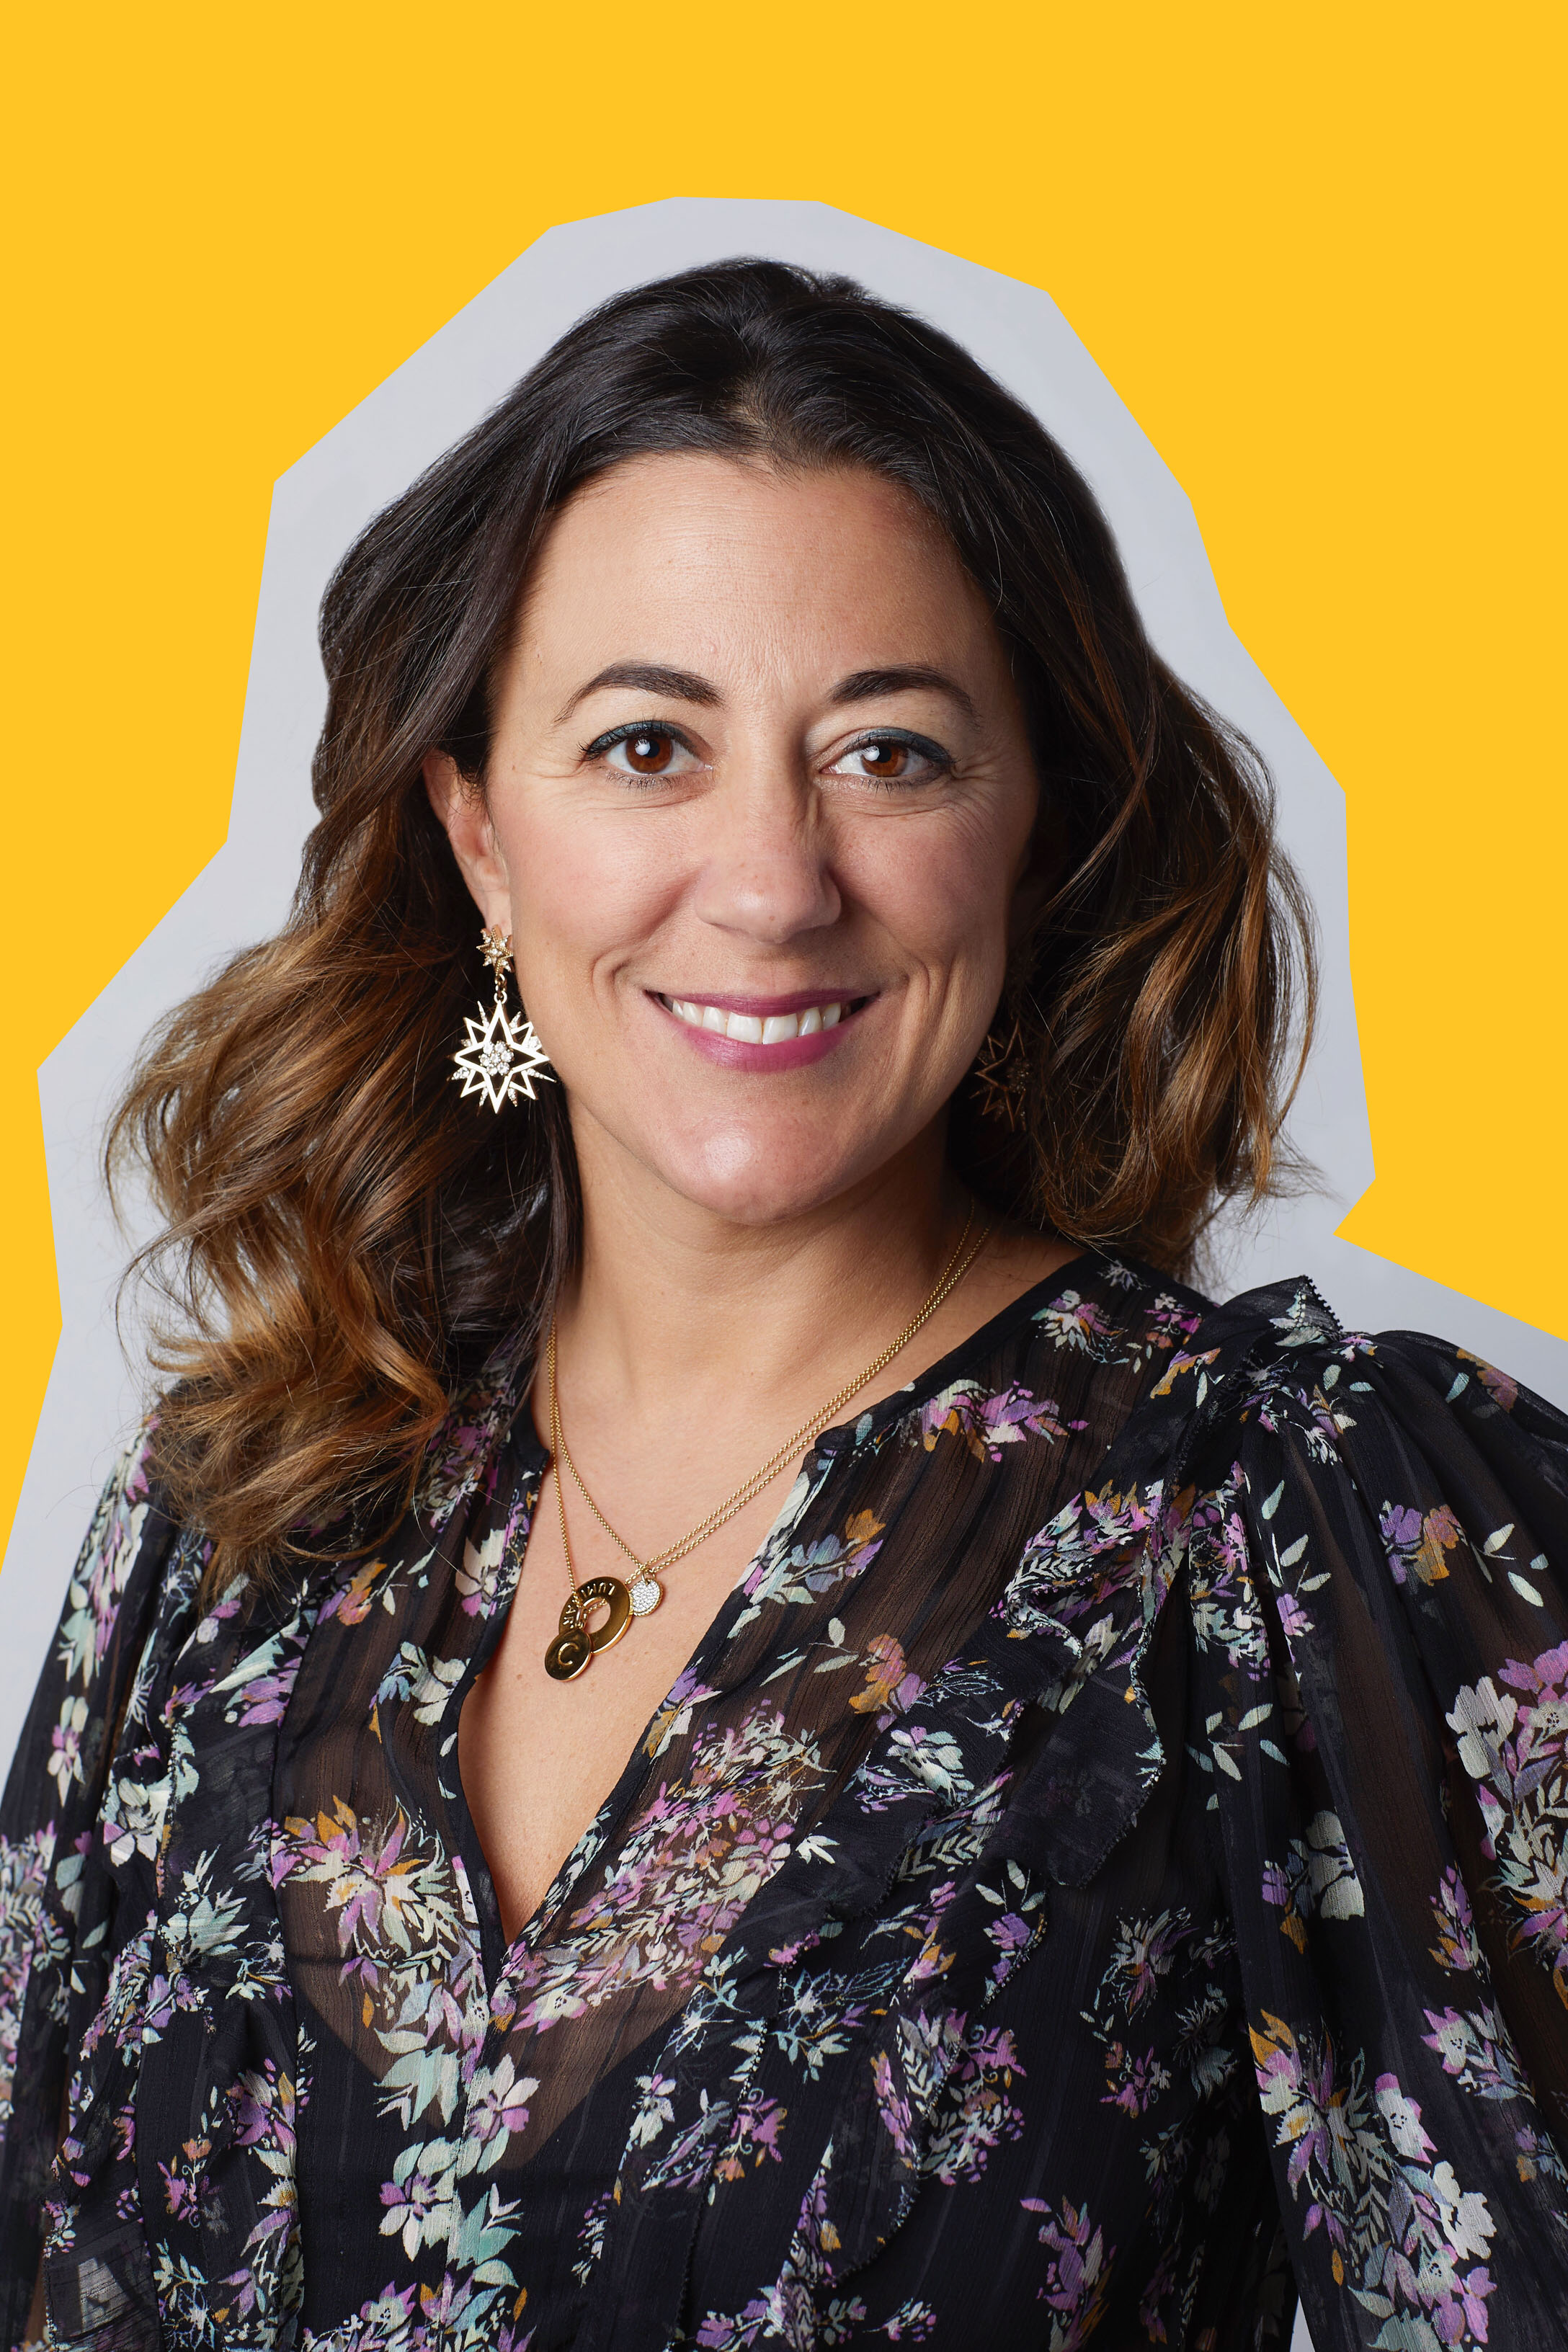 cate luzio ceo and founder of luminary